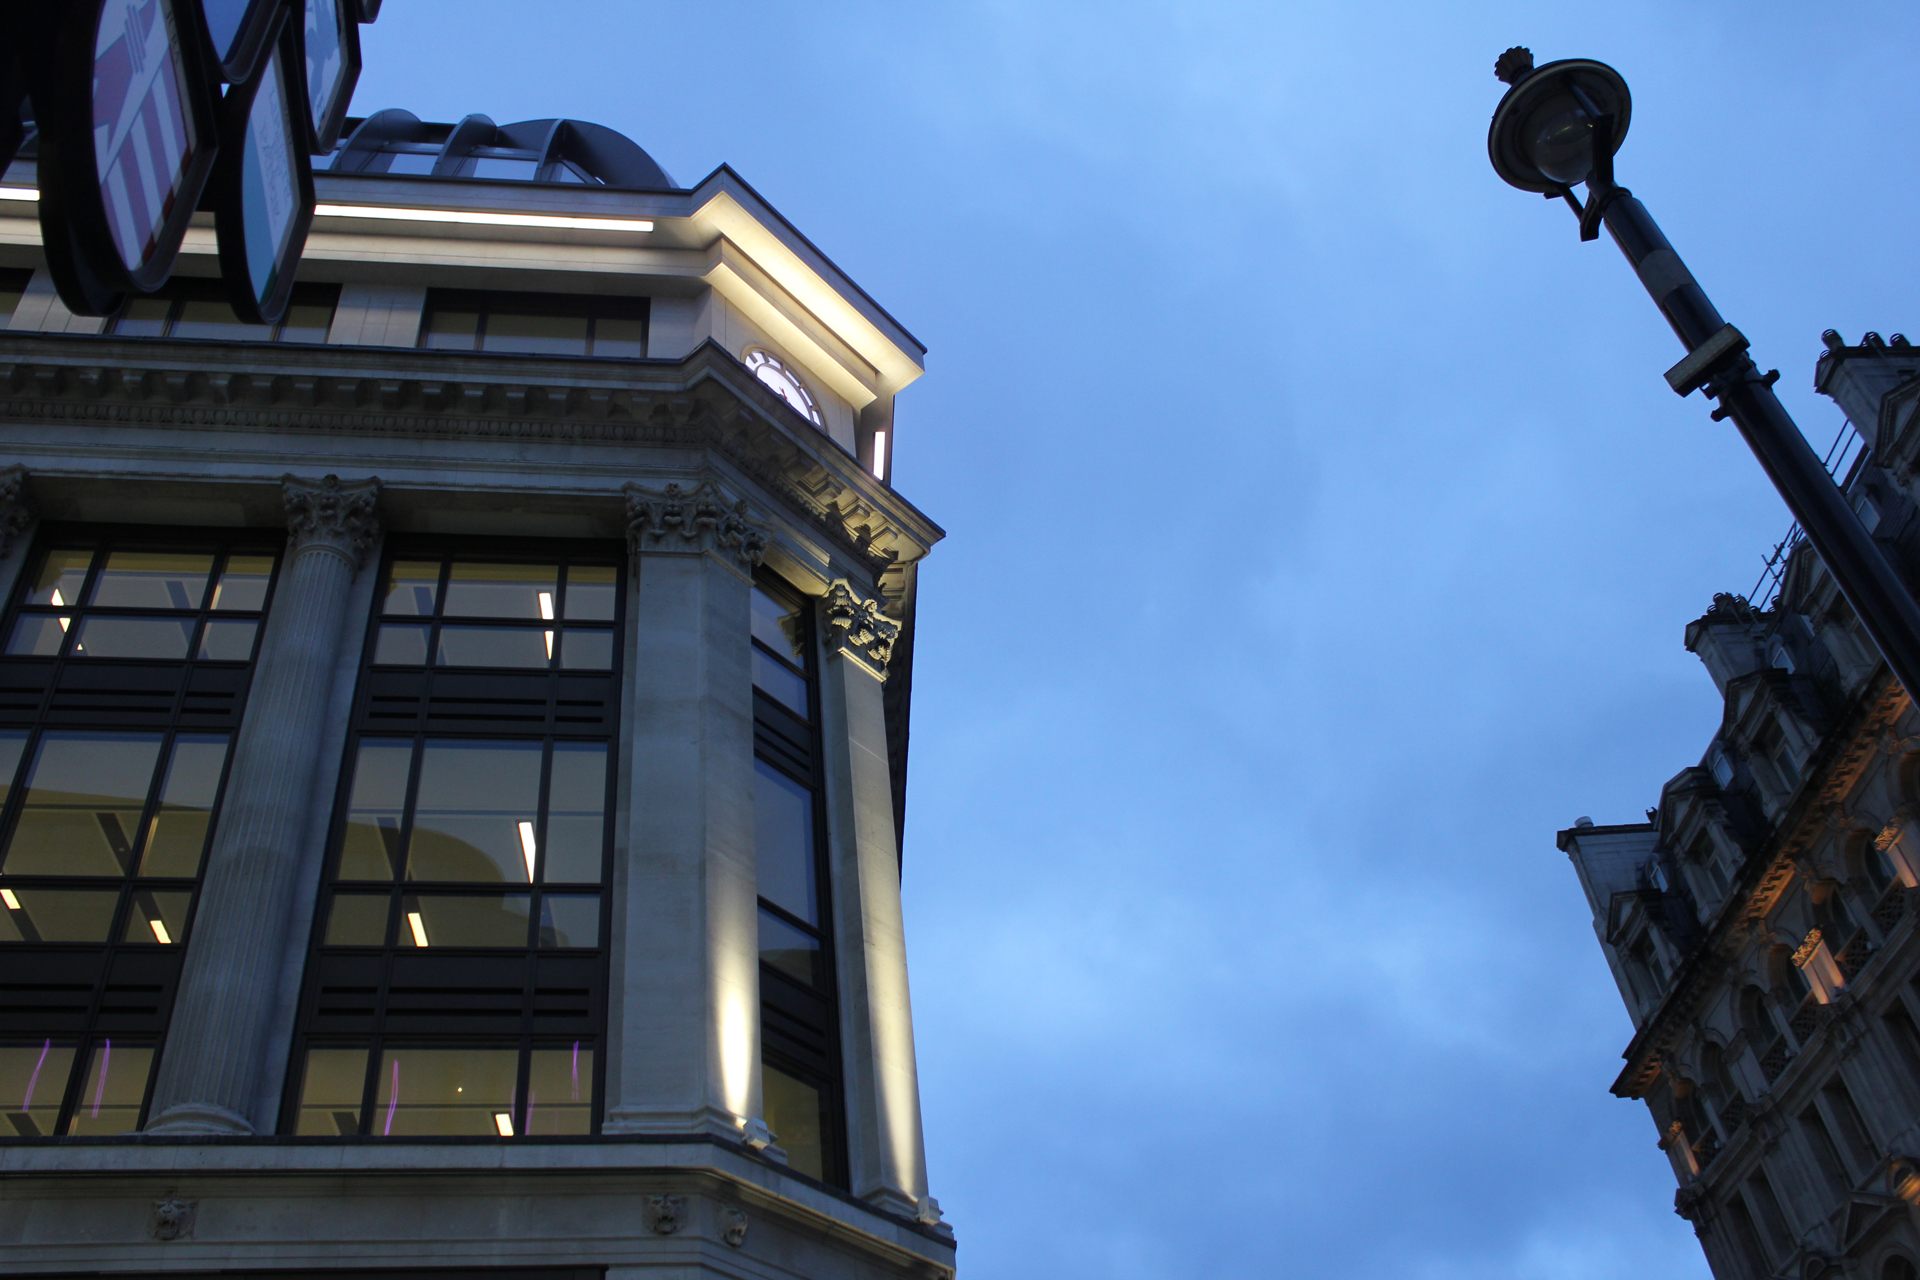 Groovy Leicester Square Exterior Facade Lighting The Light Lab Largest Home Design Picture Inspirations Pitcheantrous